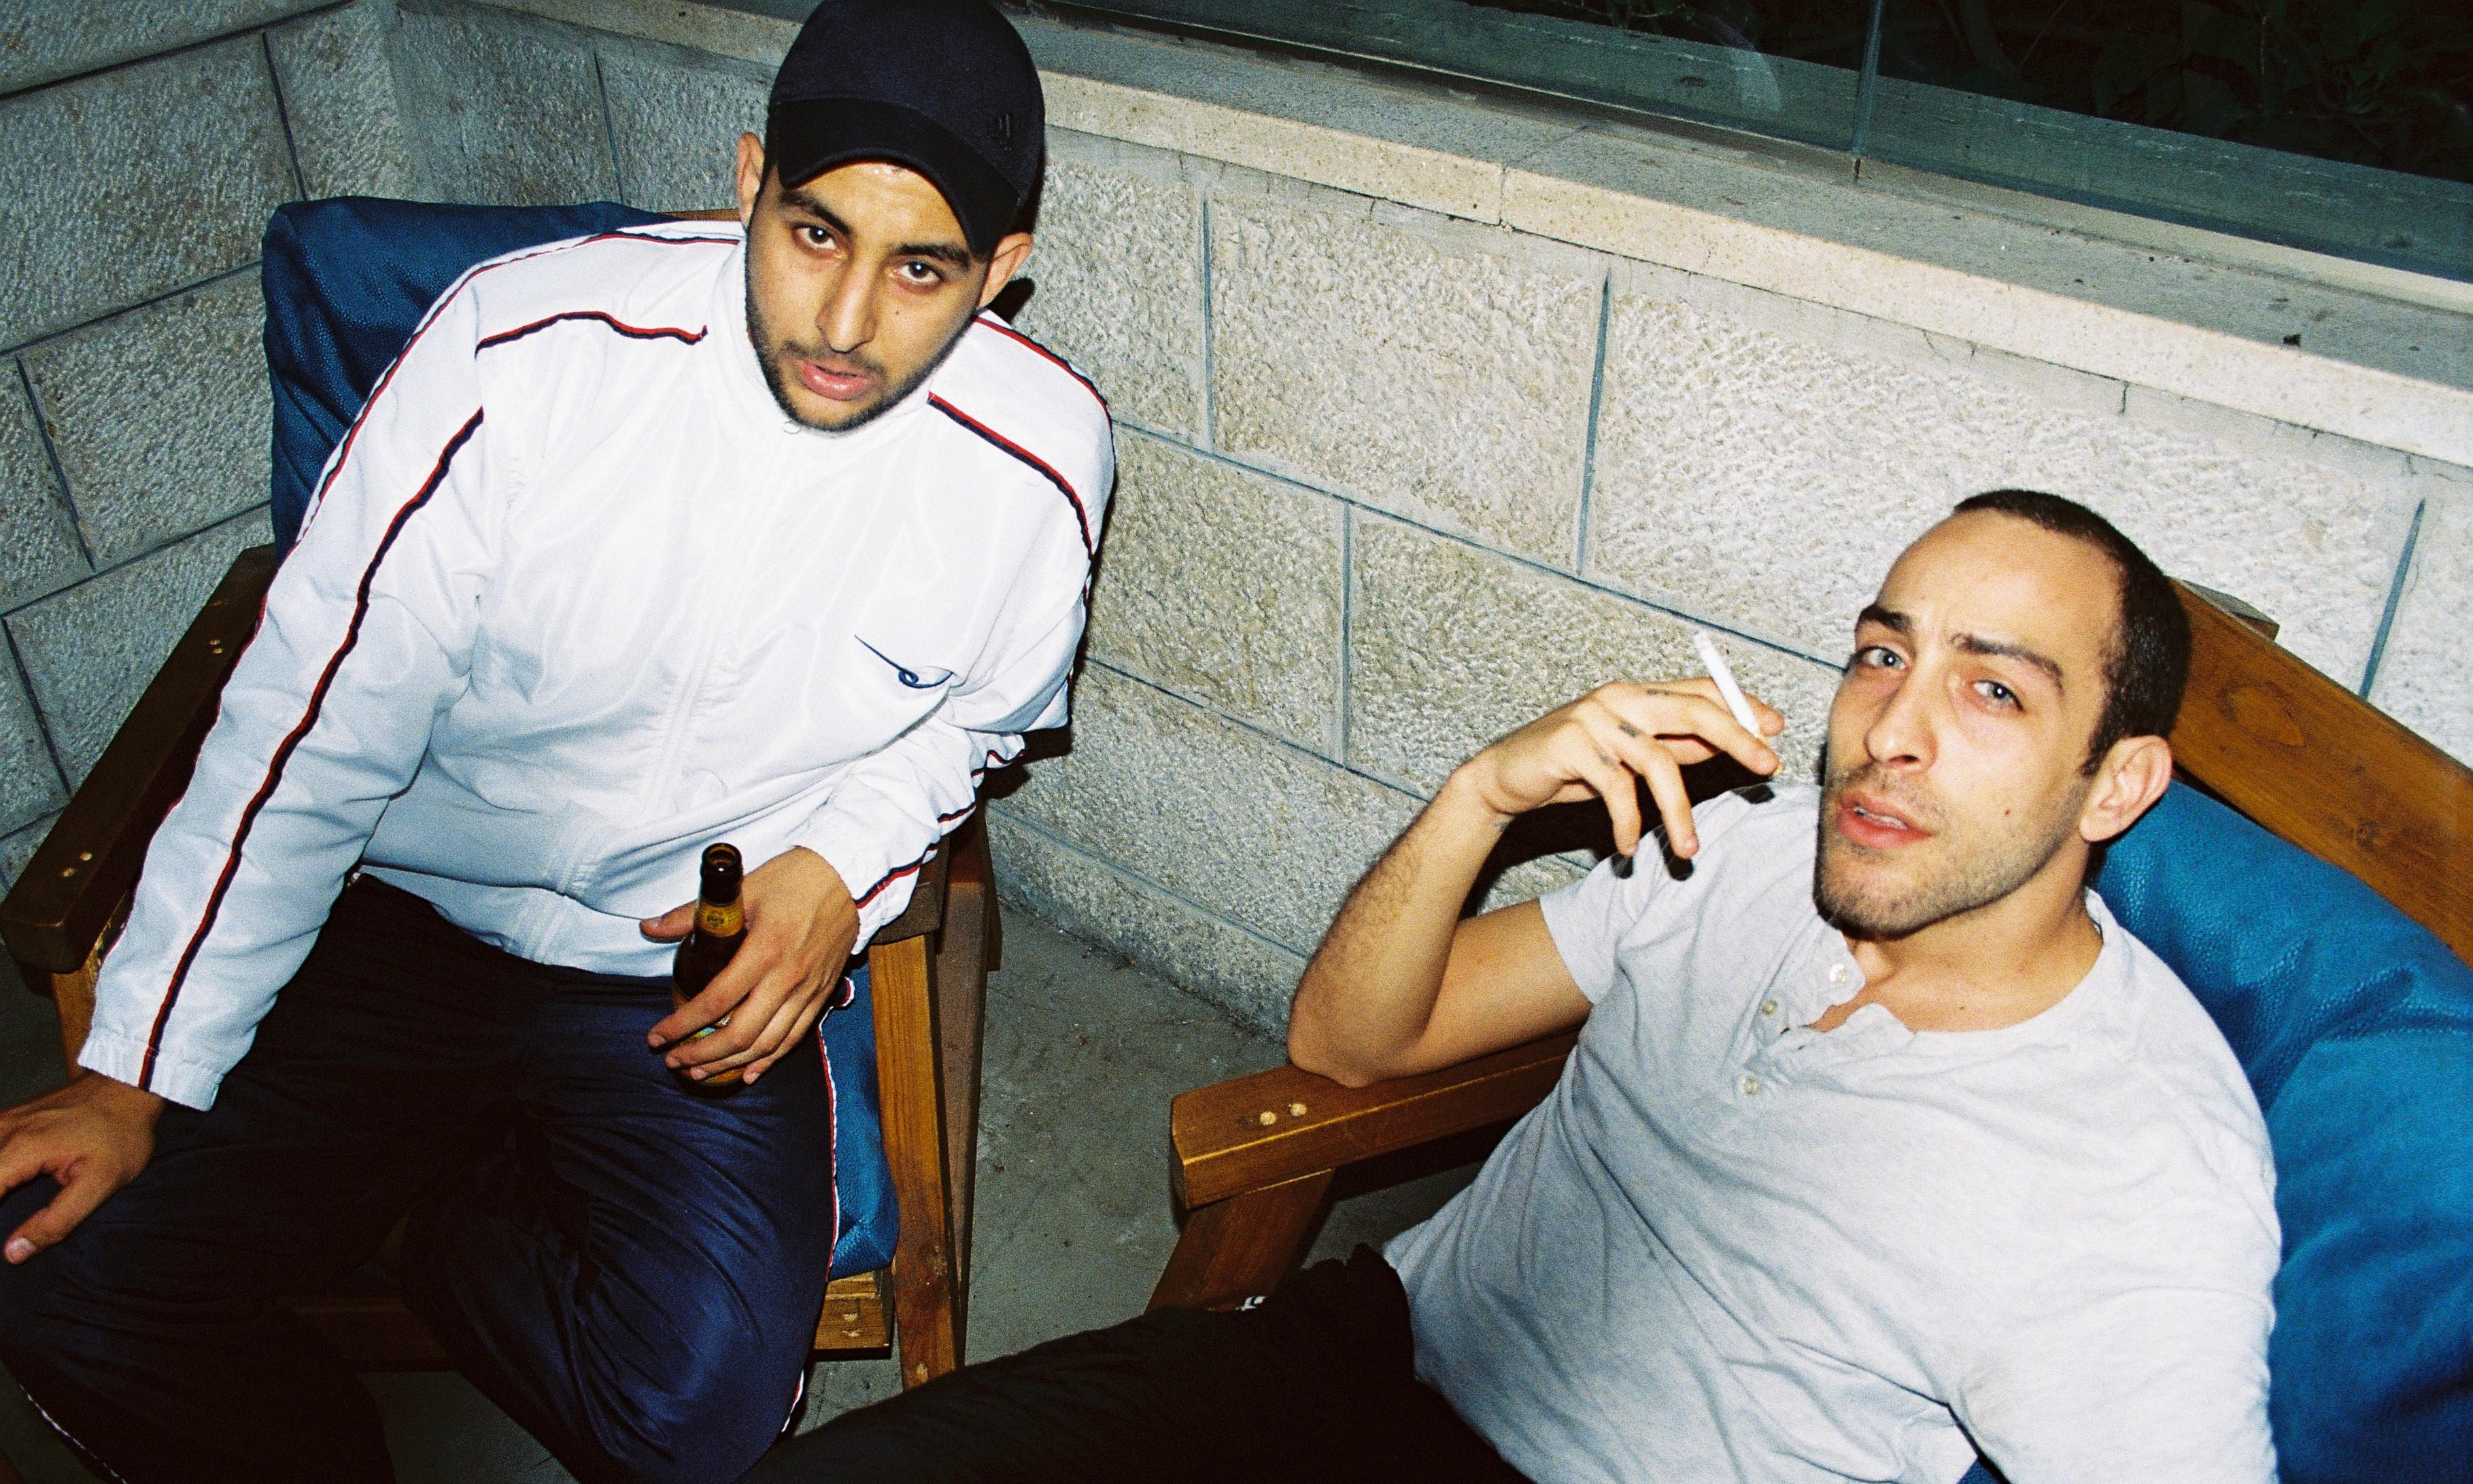 'If Israeli soldiers start shooting, we won't stop the interview': Palestinian hip-hop crew BLTNM